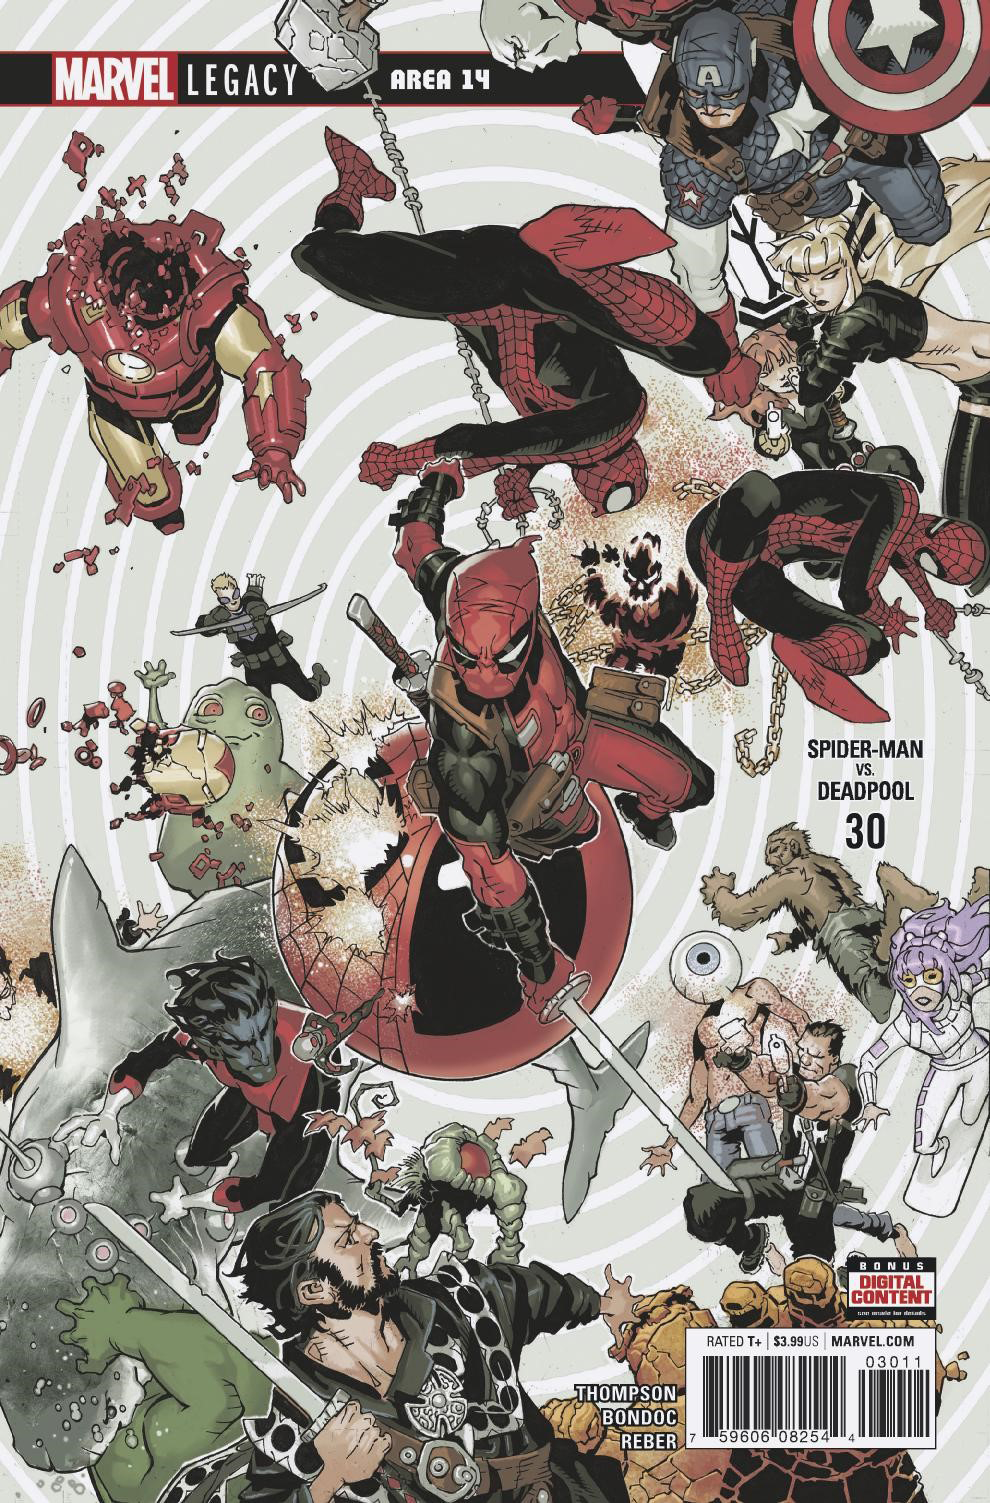 SPIDER-MAN DEADPOOL #30 LEG